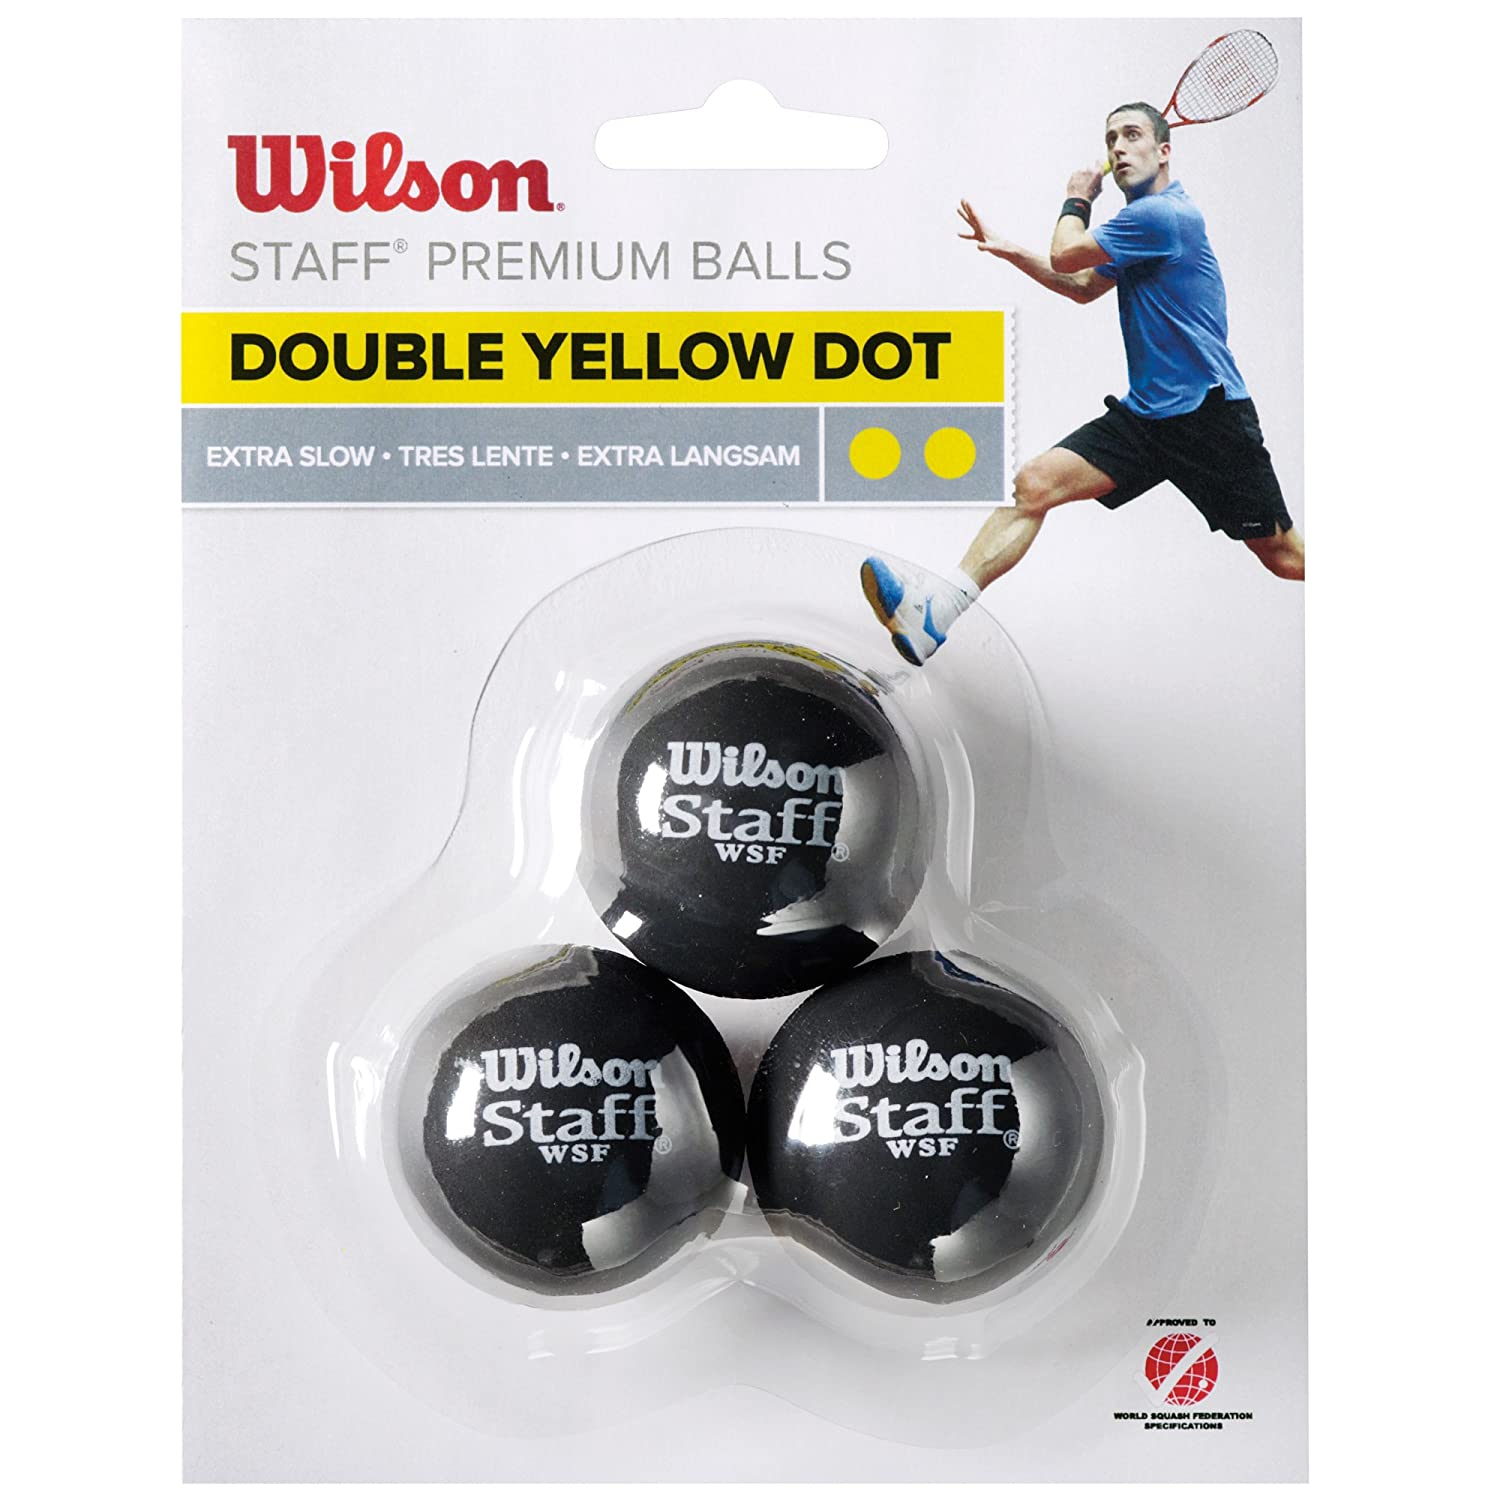 Wilson Staff Squash Balls  Extra Slow (Competitors), Black (Double Yellow Dot), Pack of 3